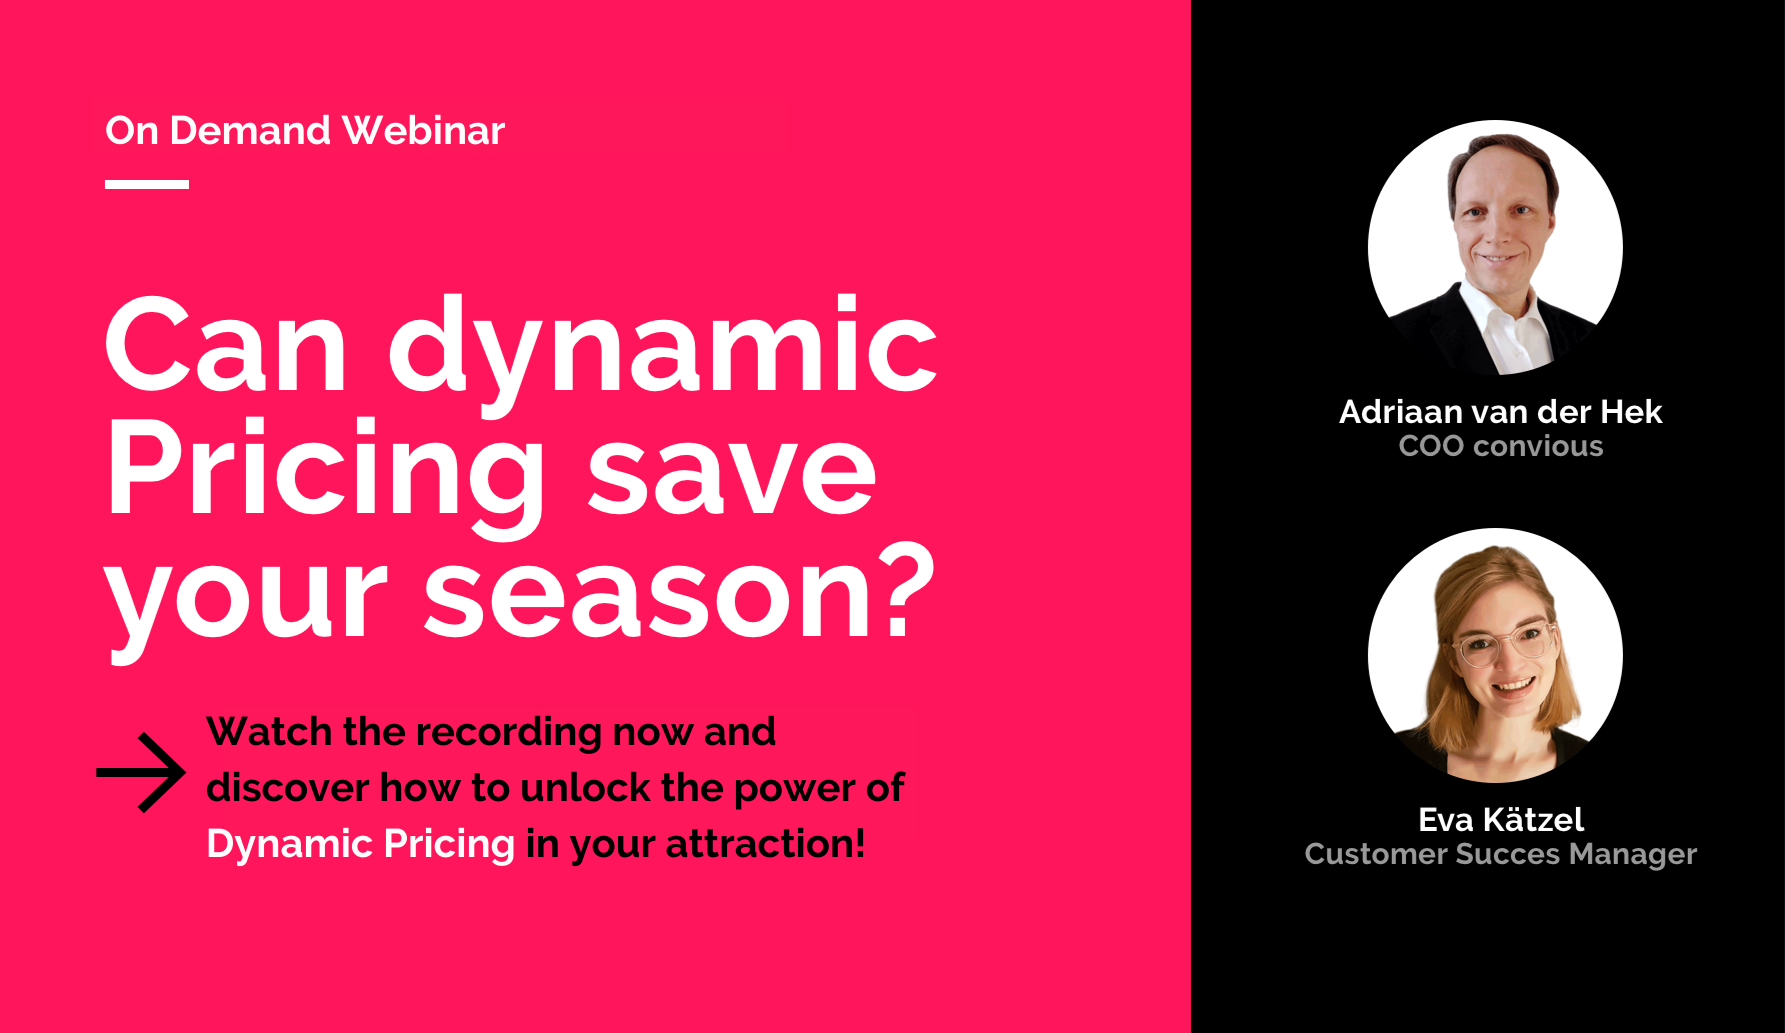 Watch the recording now and discover how to unlock the power of Dynamic Pricing in your attraction